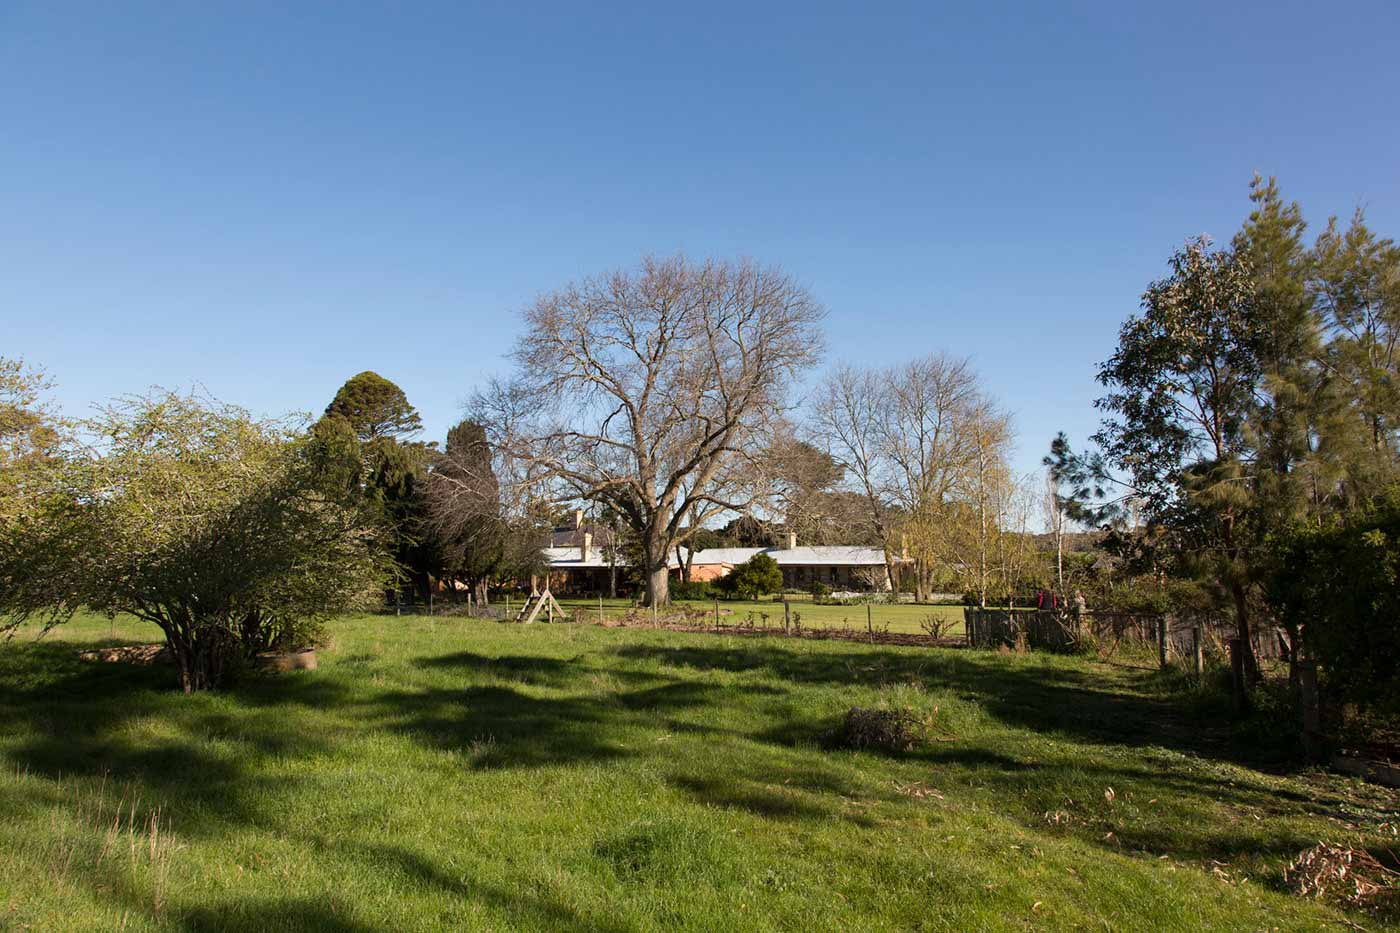 A photo of very green, fertile land with a homestead in the background surrounded by a variety of trees and fences. The sky is blue and cloudless.